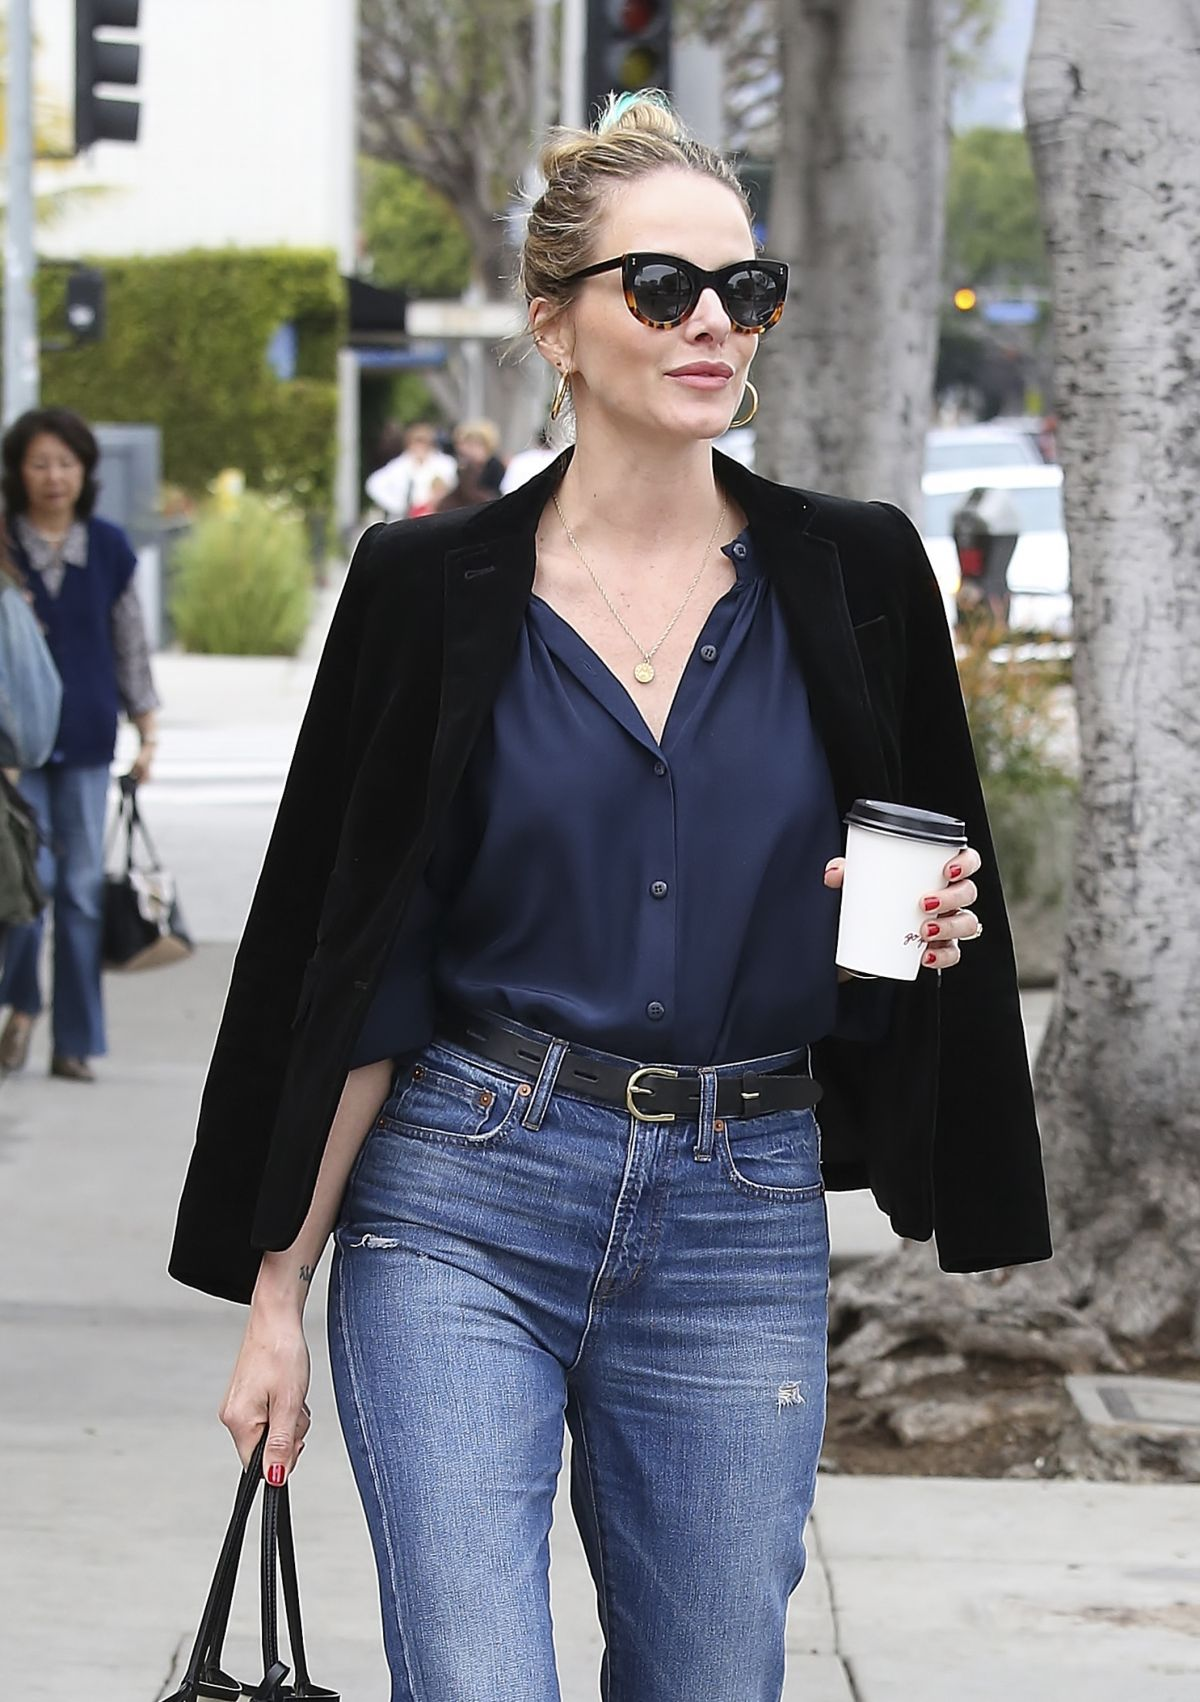 MONET MAZUR Out for Coffee in Los Angeles 03/22/2017